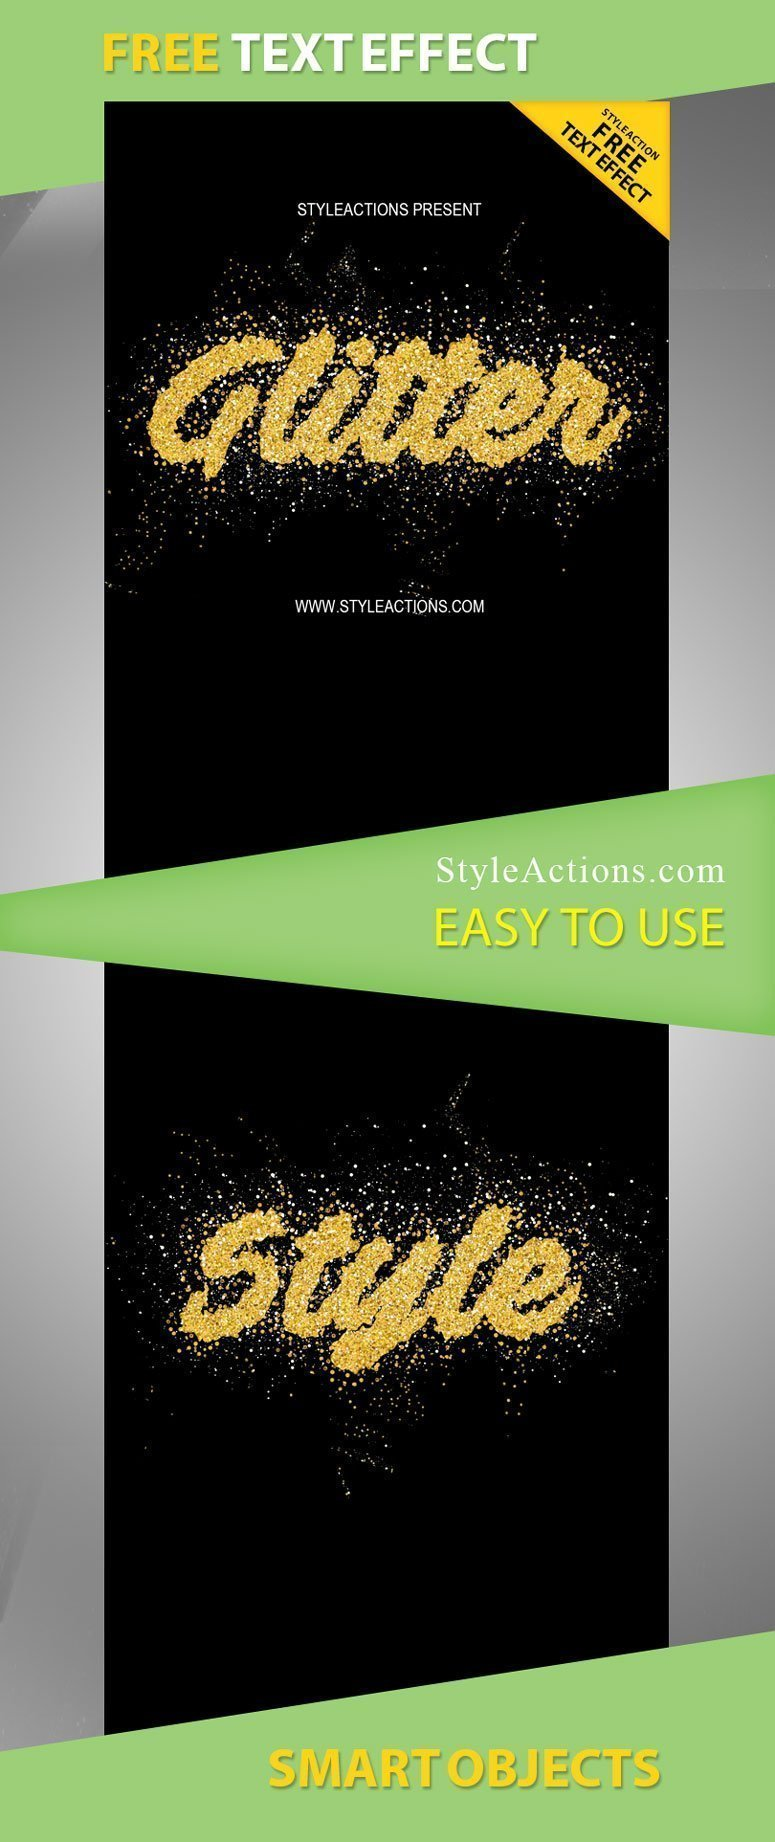 Glitter Style Photoshop Actions Free Download #15225 - Styleflyers